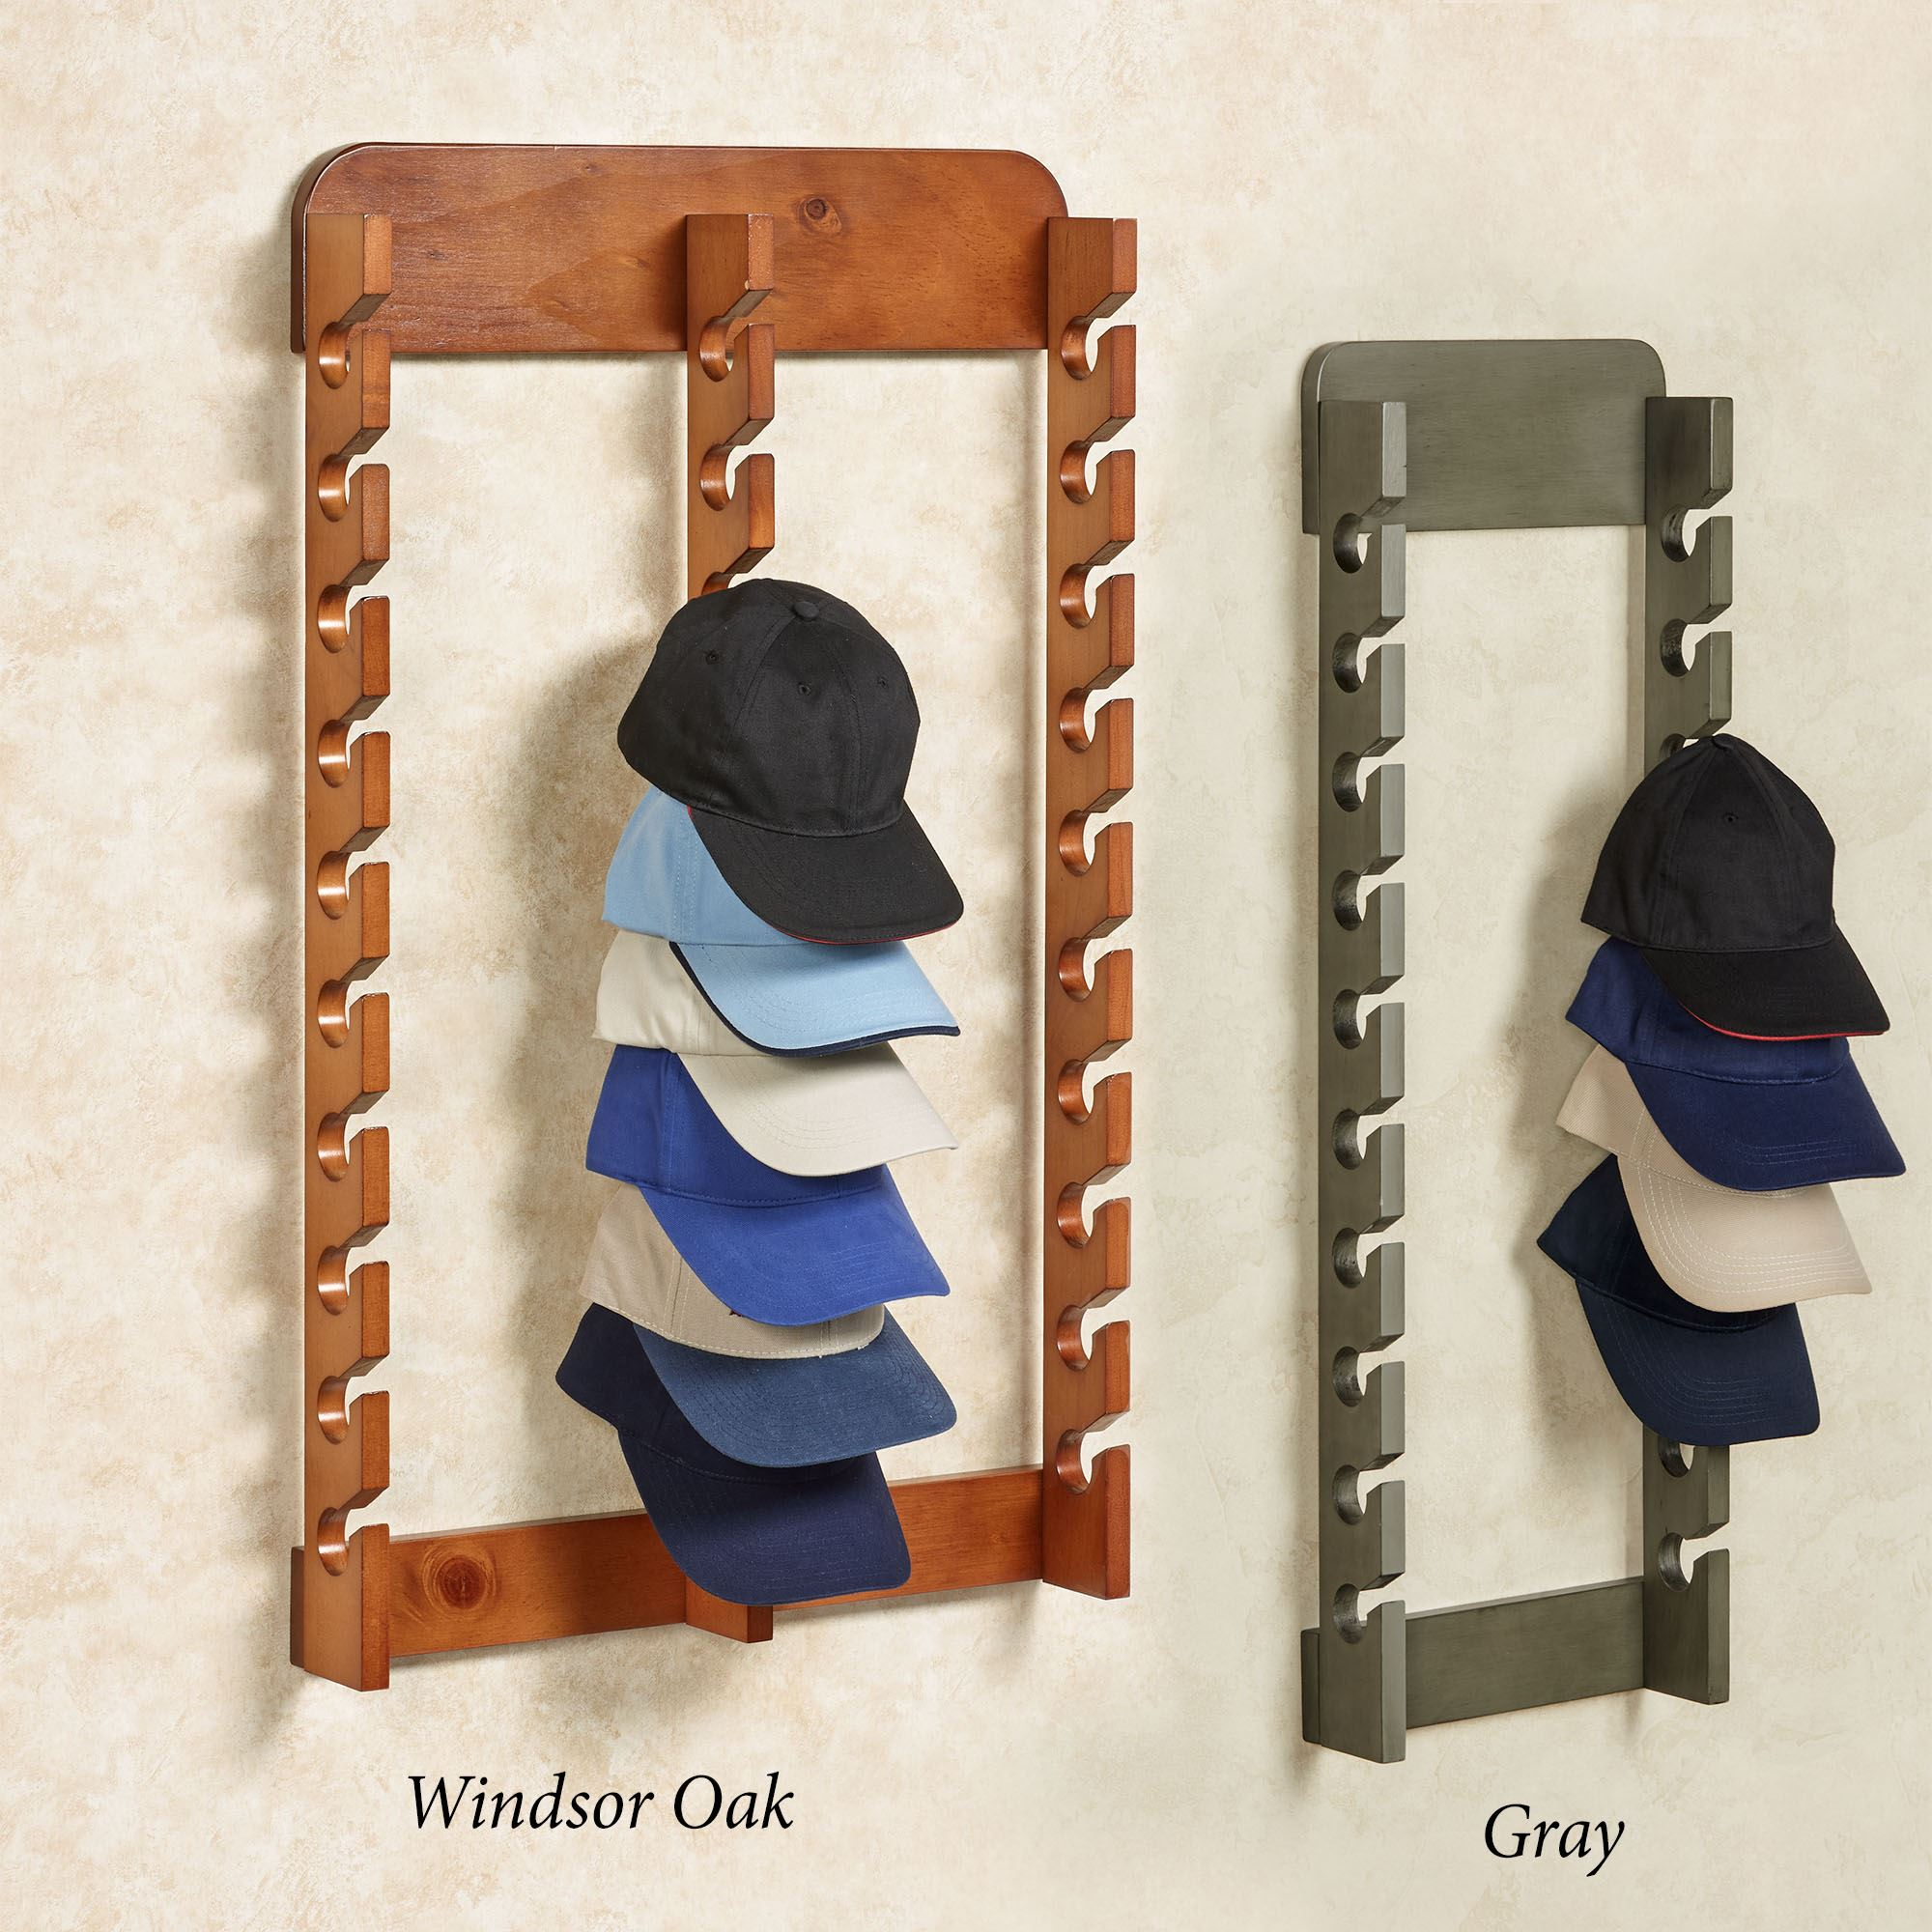 999a05e9bce Wood Cap Display Wall Rack - holds up to 30 hats